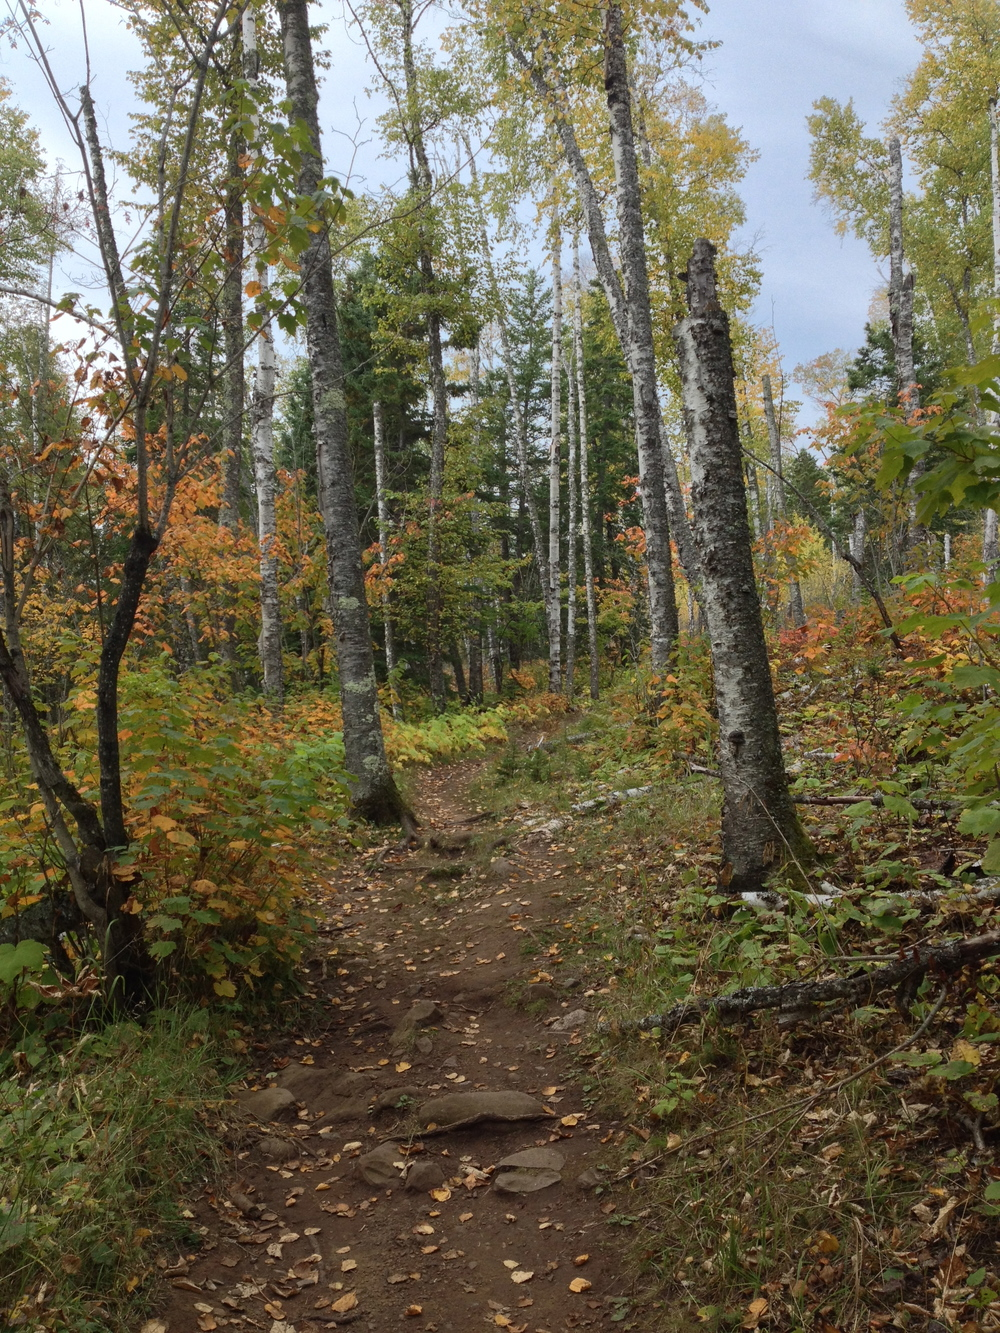 The Minnesota Hiking Club Trail at Cascade River State Park